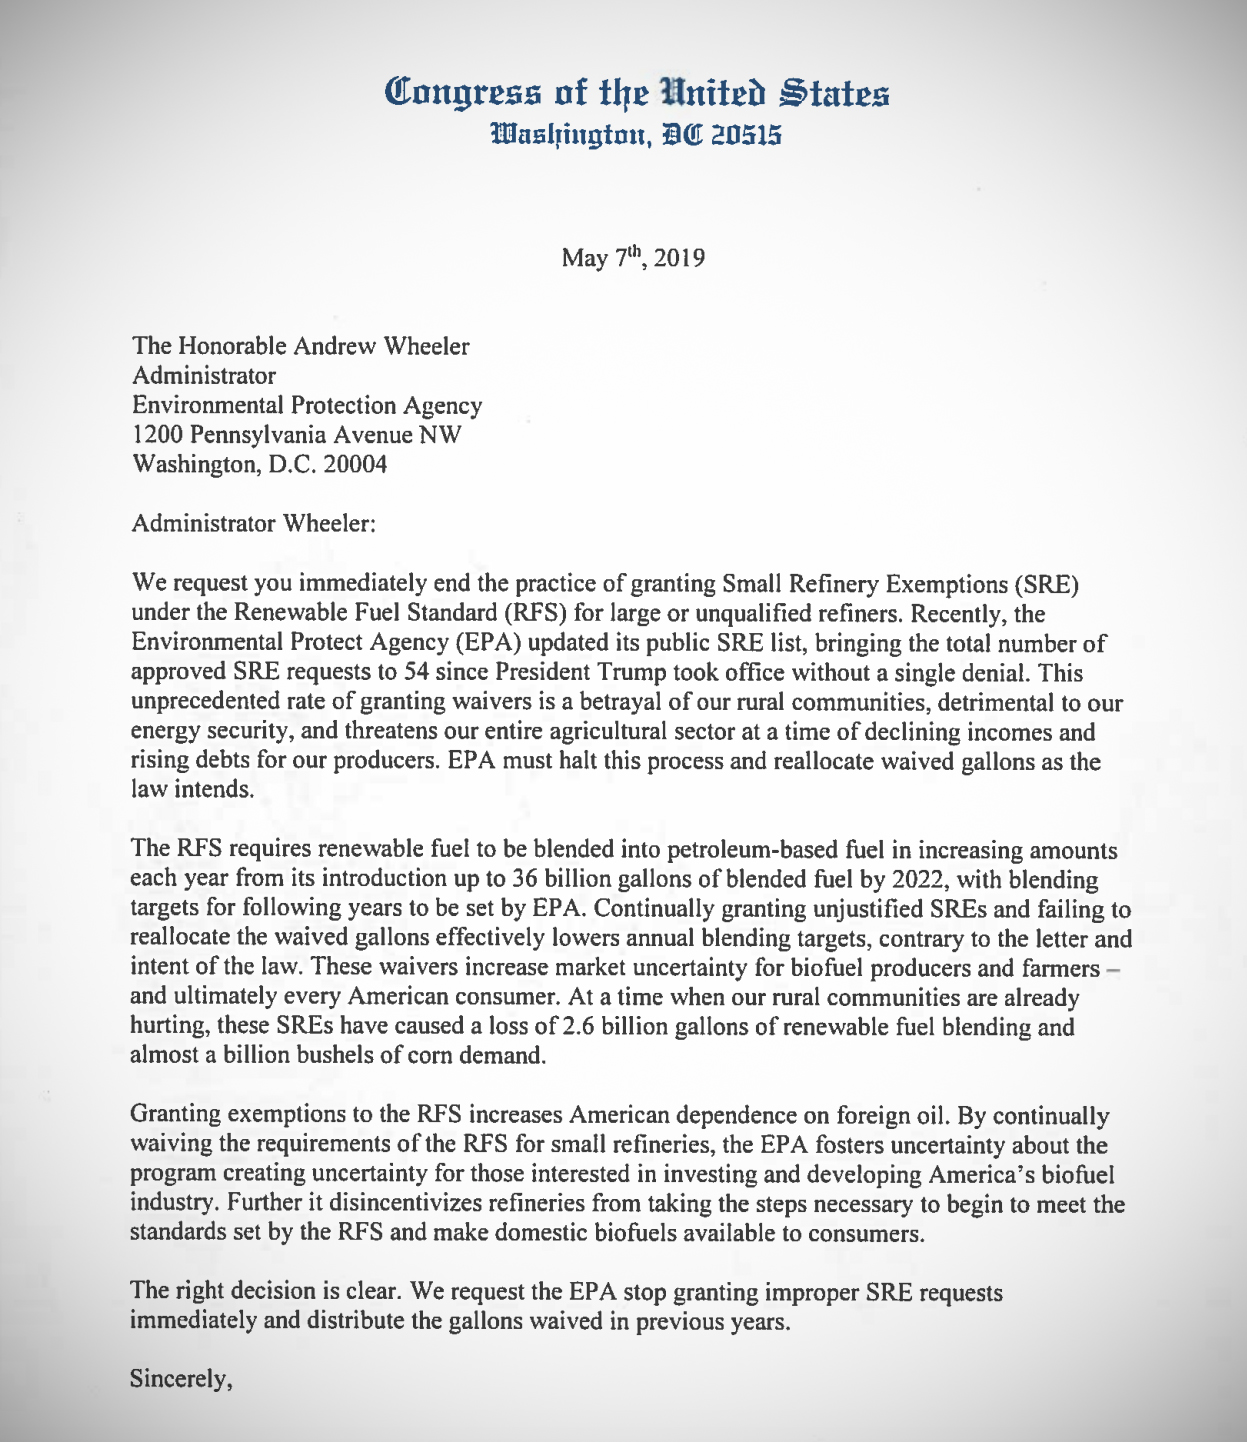 This is the letter sent by 35 members of Congress to stop the EPA from issuing improper waivers.